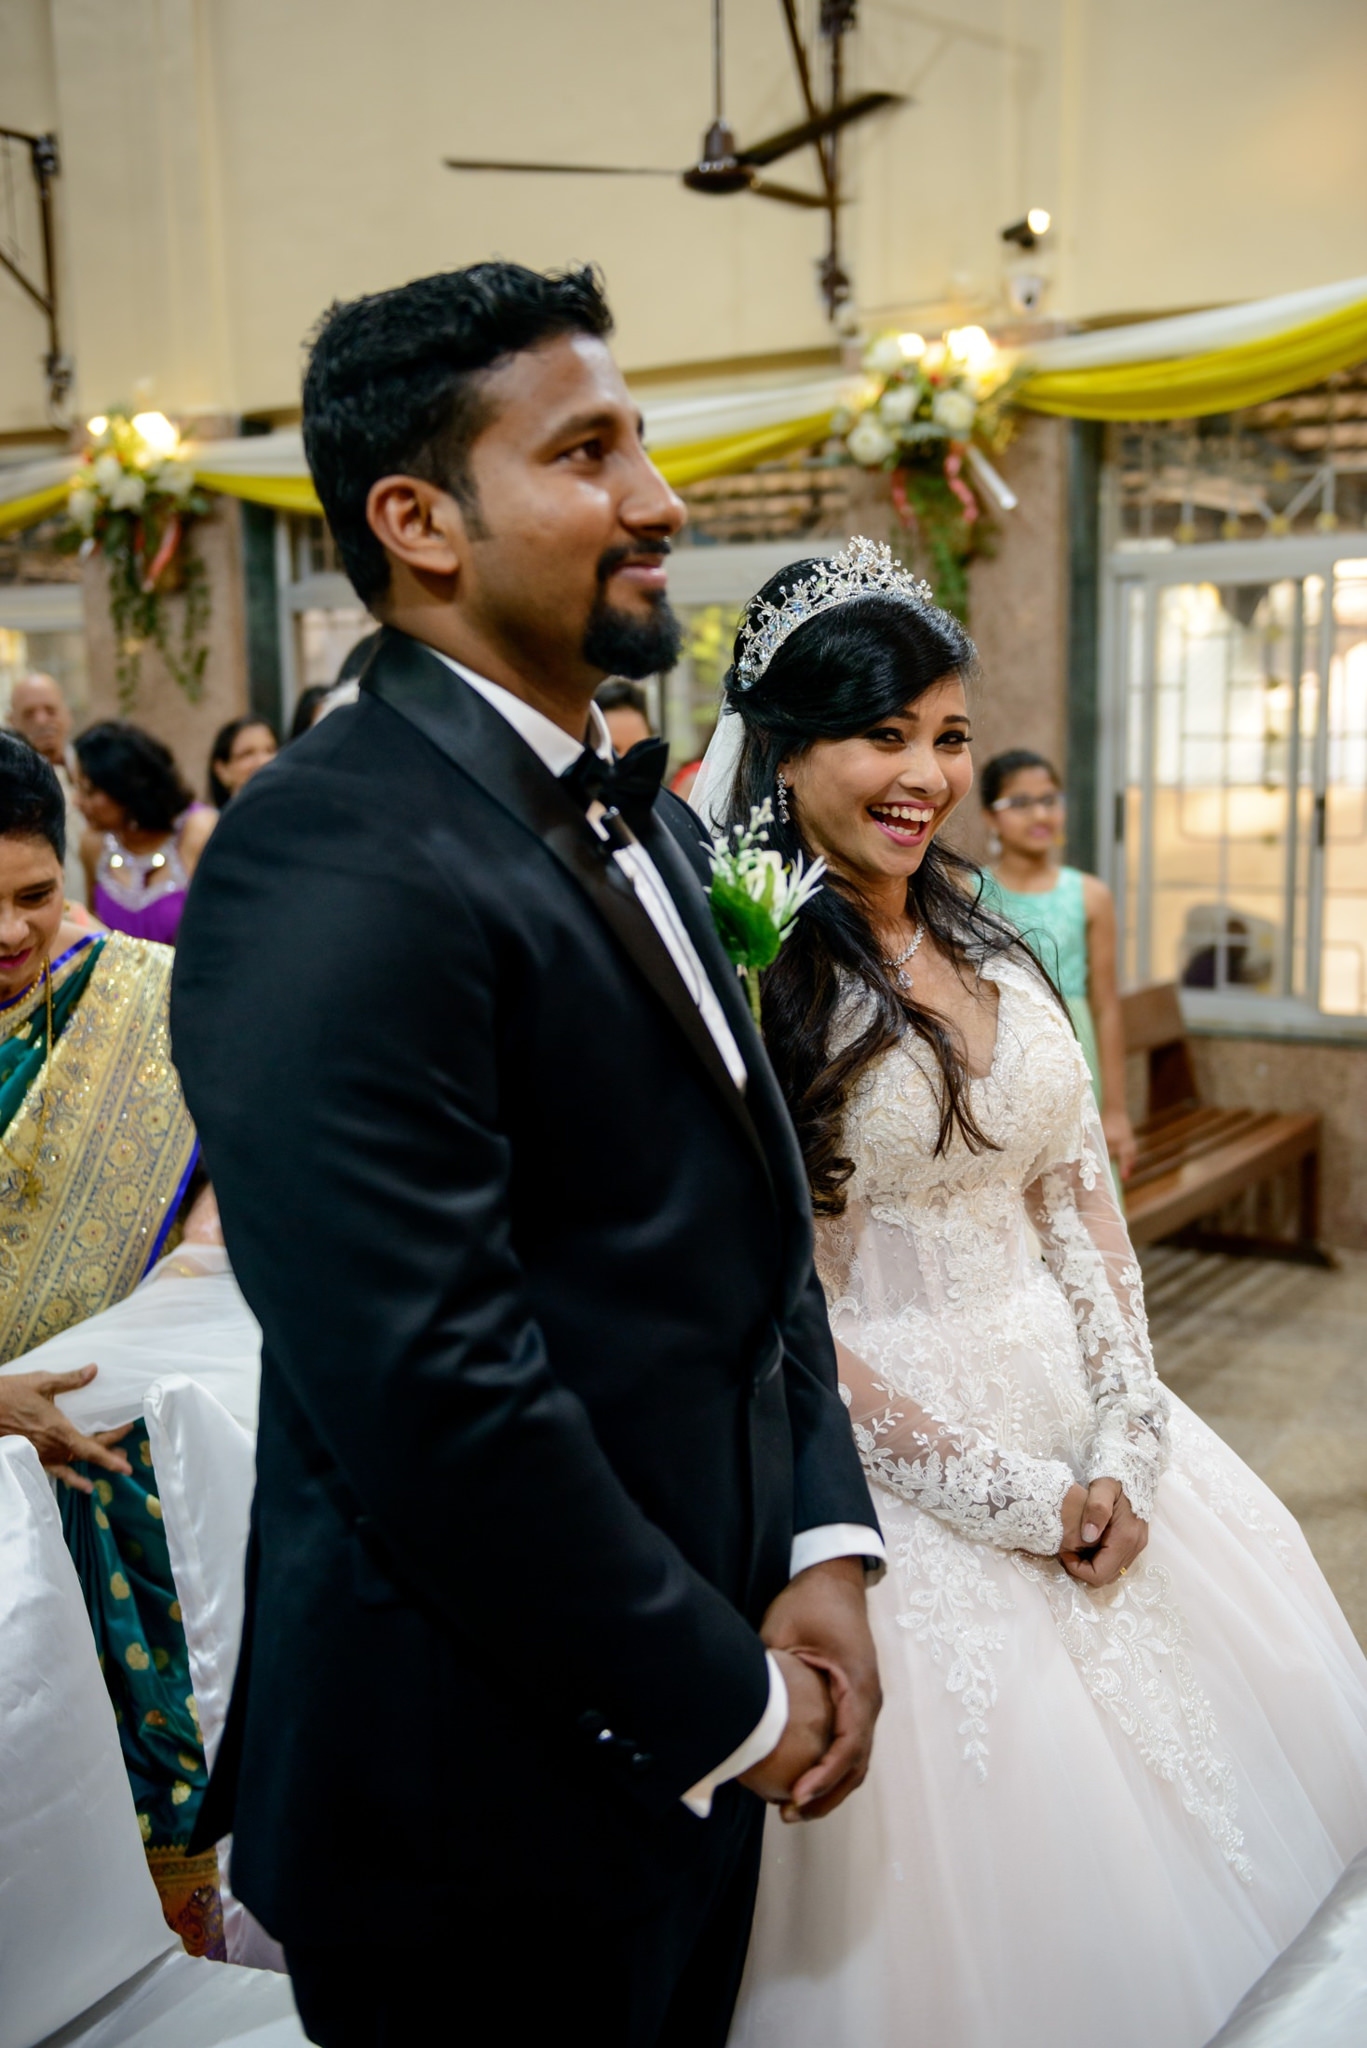 Lynn-Rajeev-Wedding-HR-99.JPG